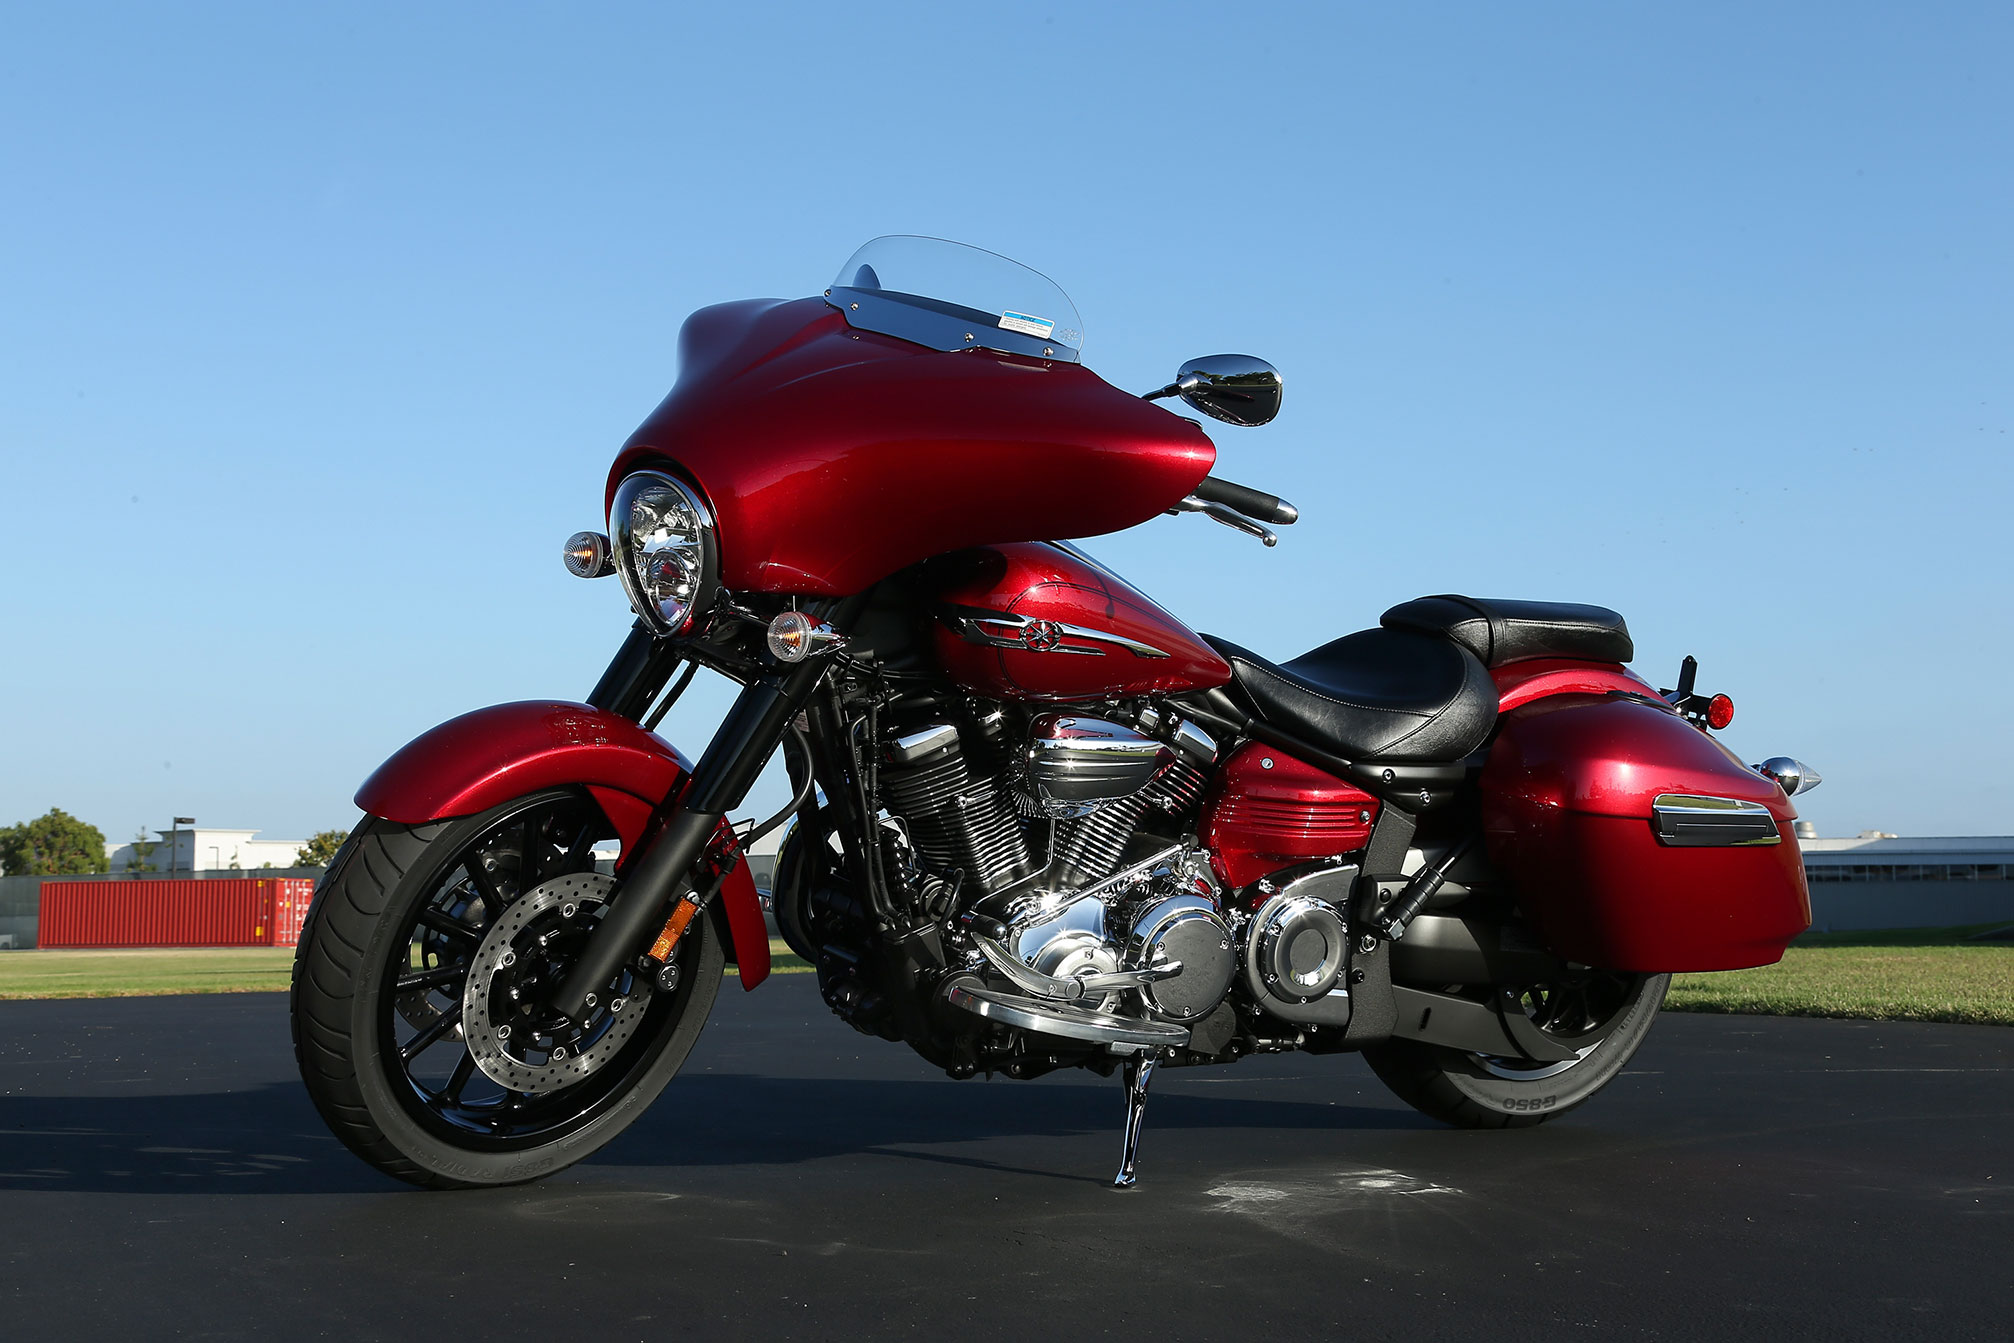 2014 Yamaha Stratoliner 1900 Deluxe Wiring Diagrams Diagram Review Rh Totalmotorcycle Com Star Venture Raider With Wheels